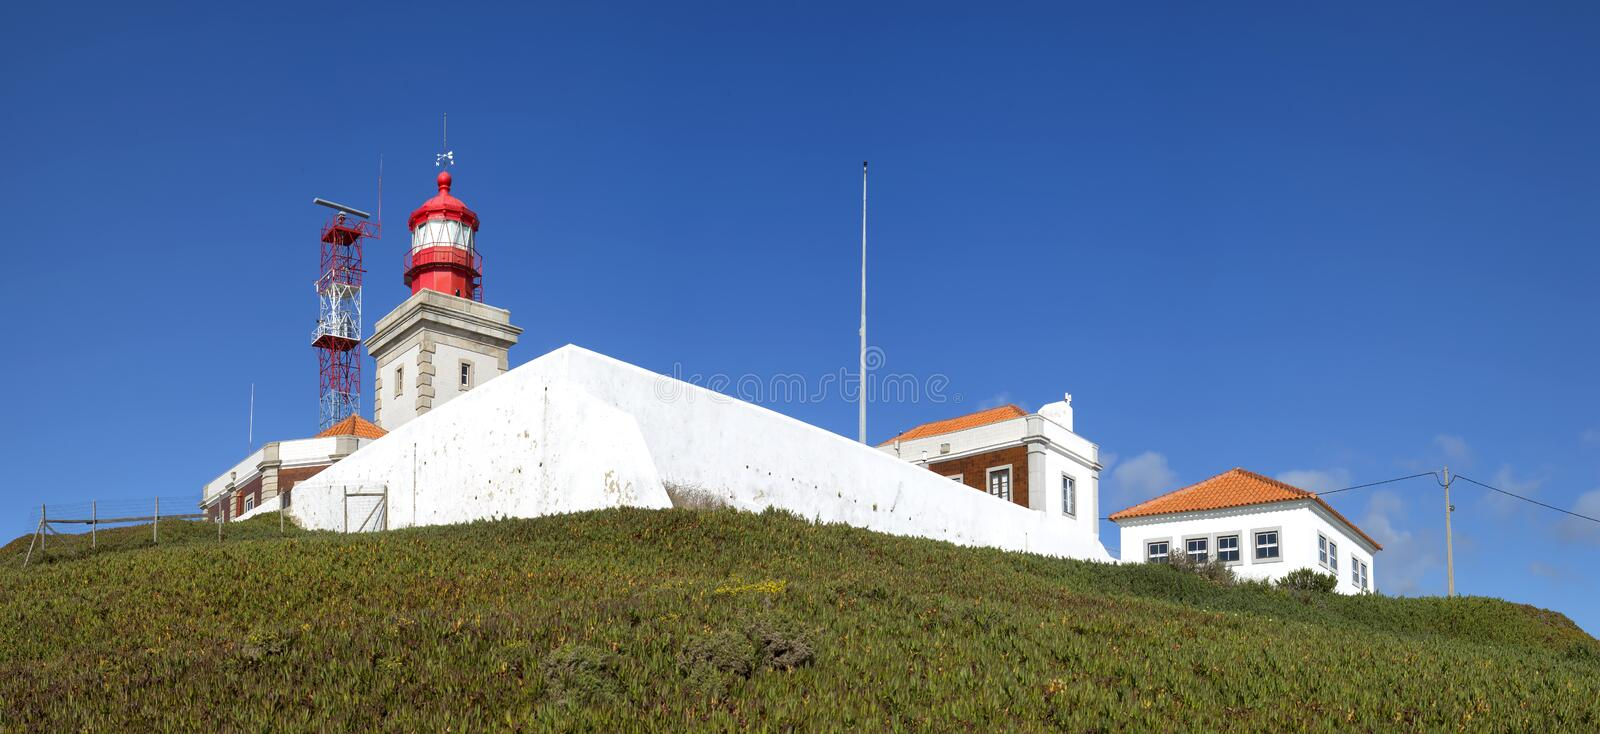 Cabo da Roca Lighthouse. Cabo da Roca is the most westerly point of the Europe mainland, Sintra, Portugal. stock photo